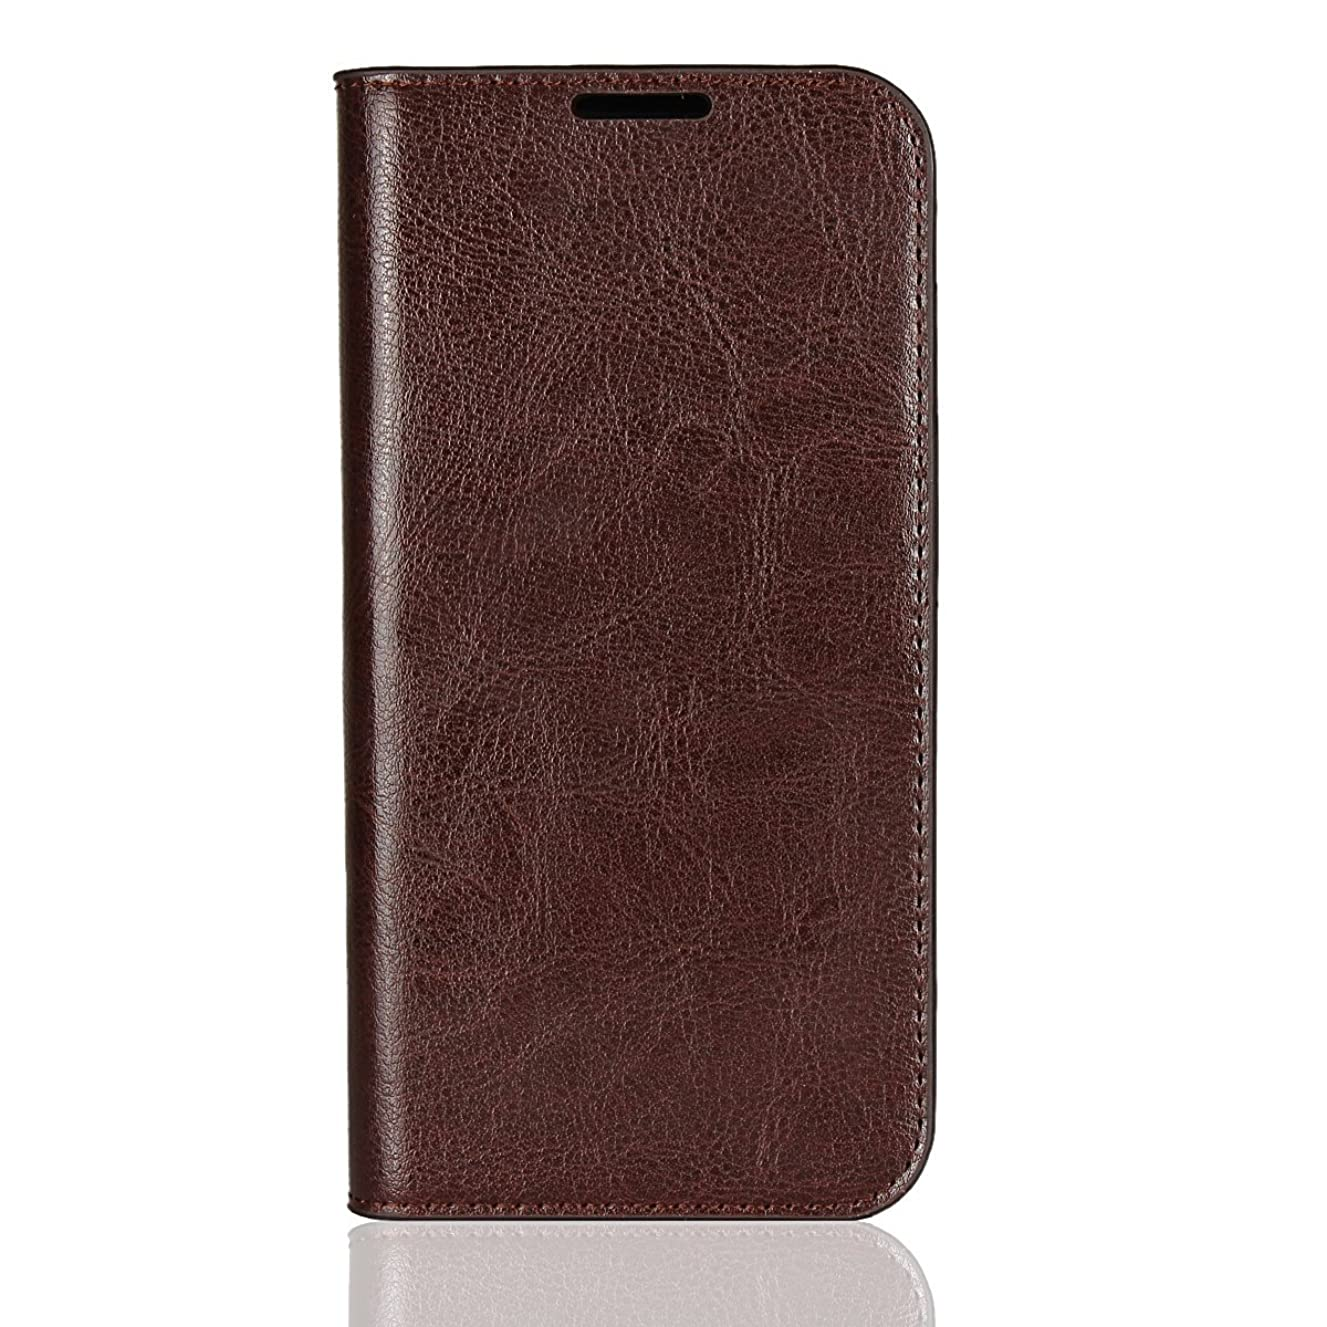 Moto G6 Case, Cavor Genuine Leather Folio Folding Slim Wallet Case, Multiple Credit Card Slots and Kickstand Heavy Duty Full Body Protection Phone Case (No Magnet Closure) - Dark Brown